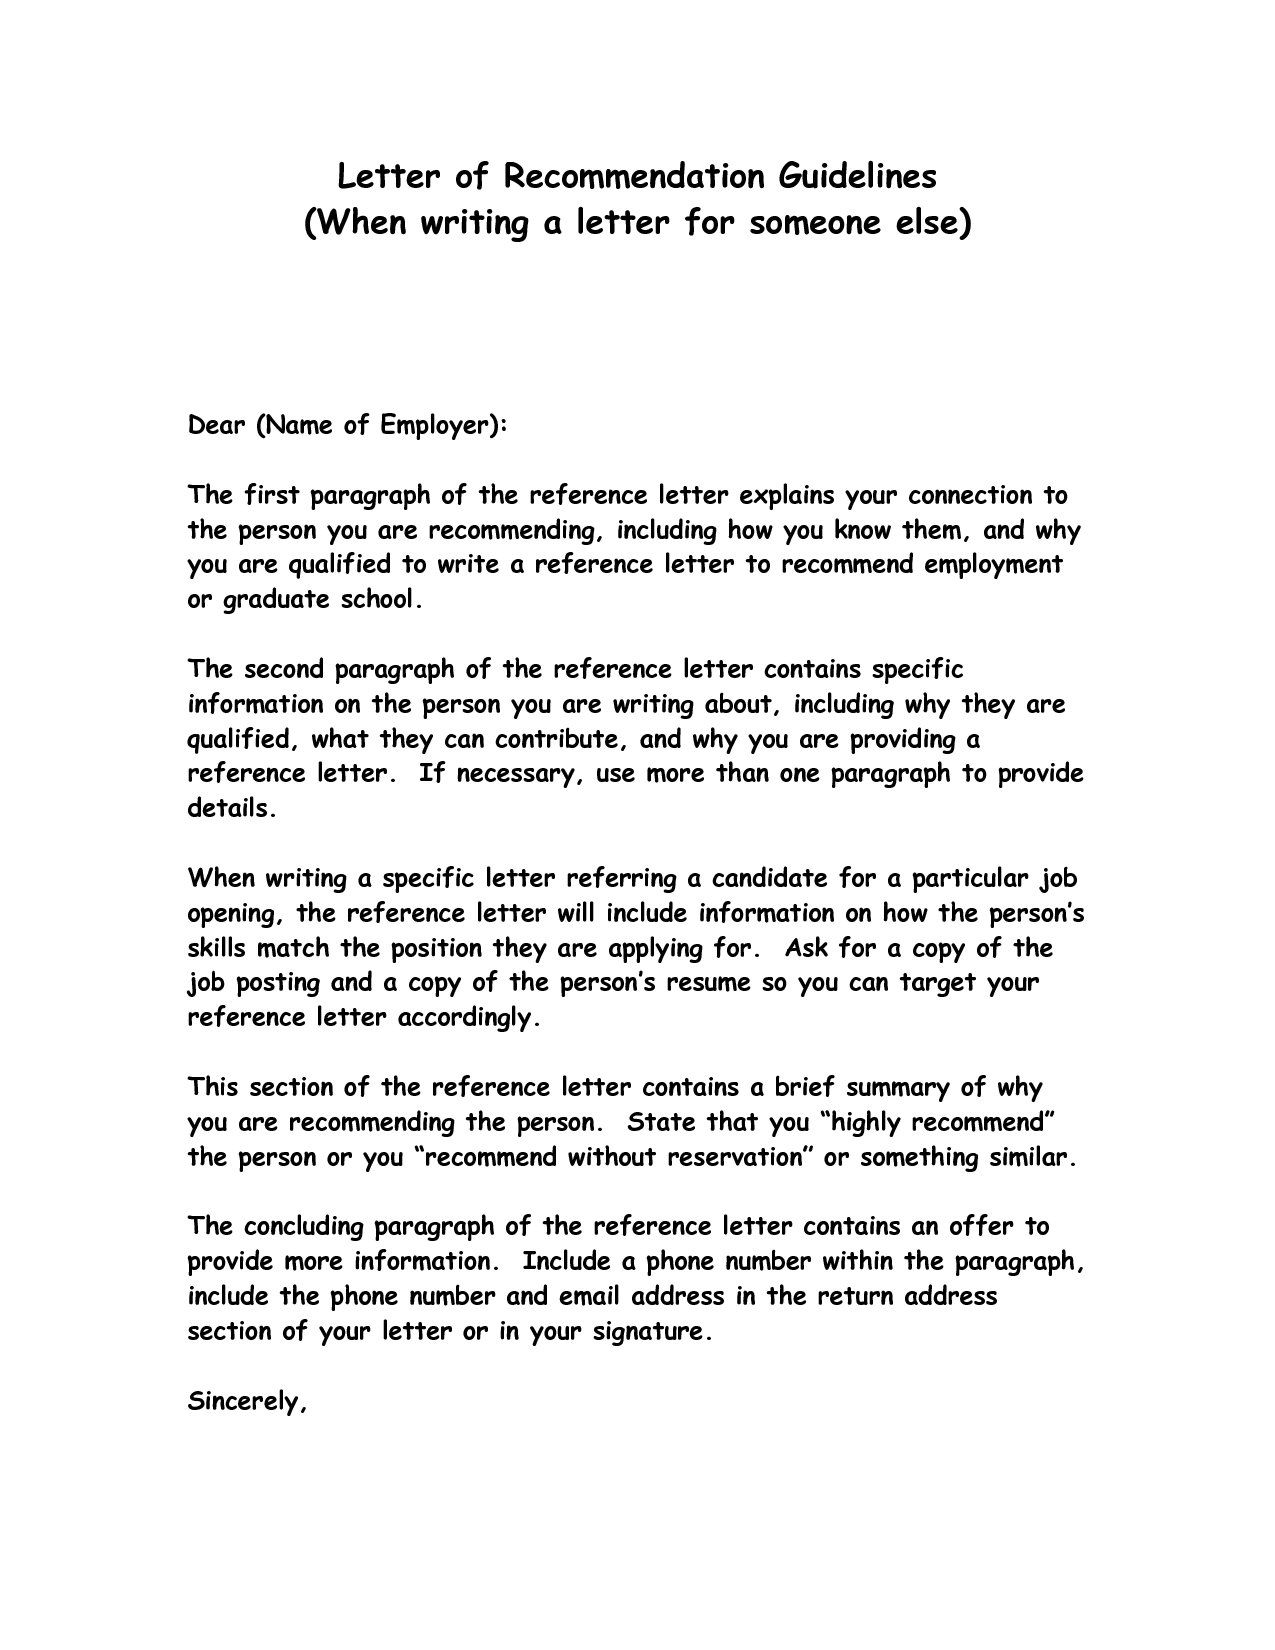 How to Write a Reference Letter recommend